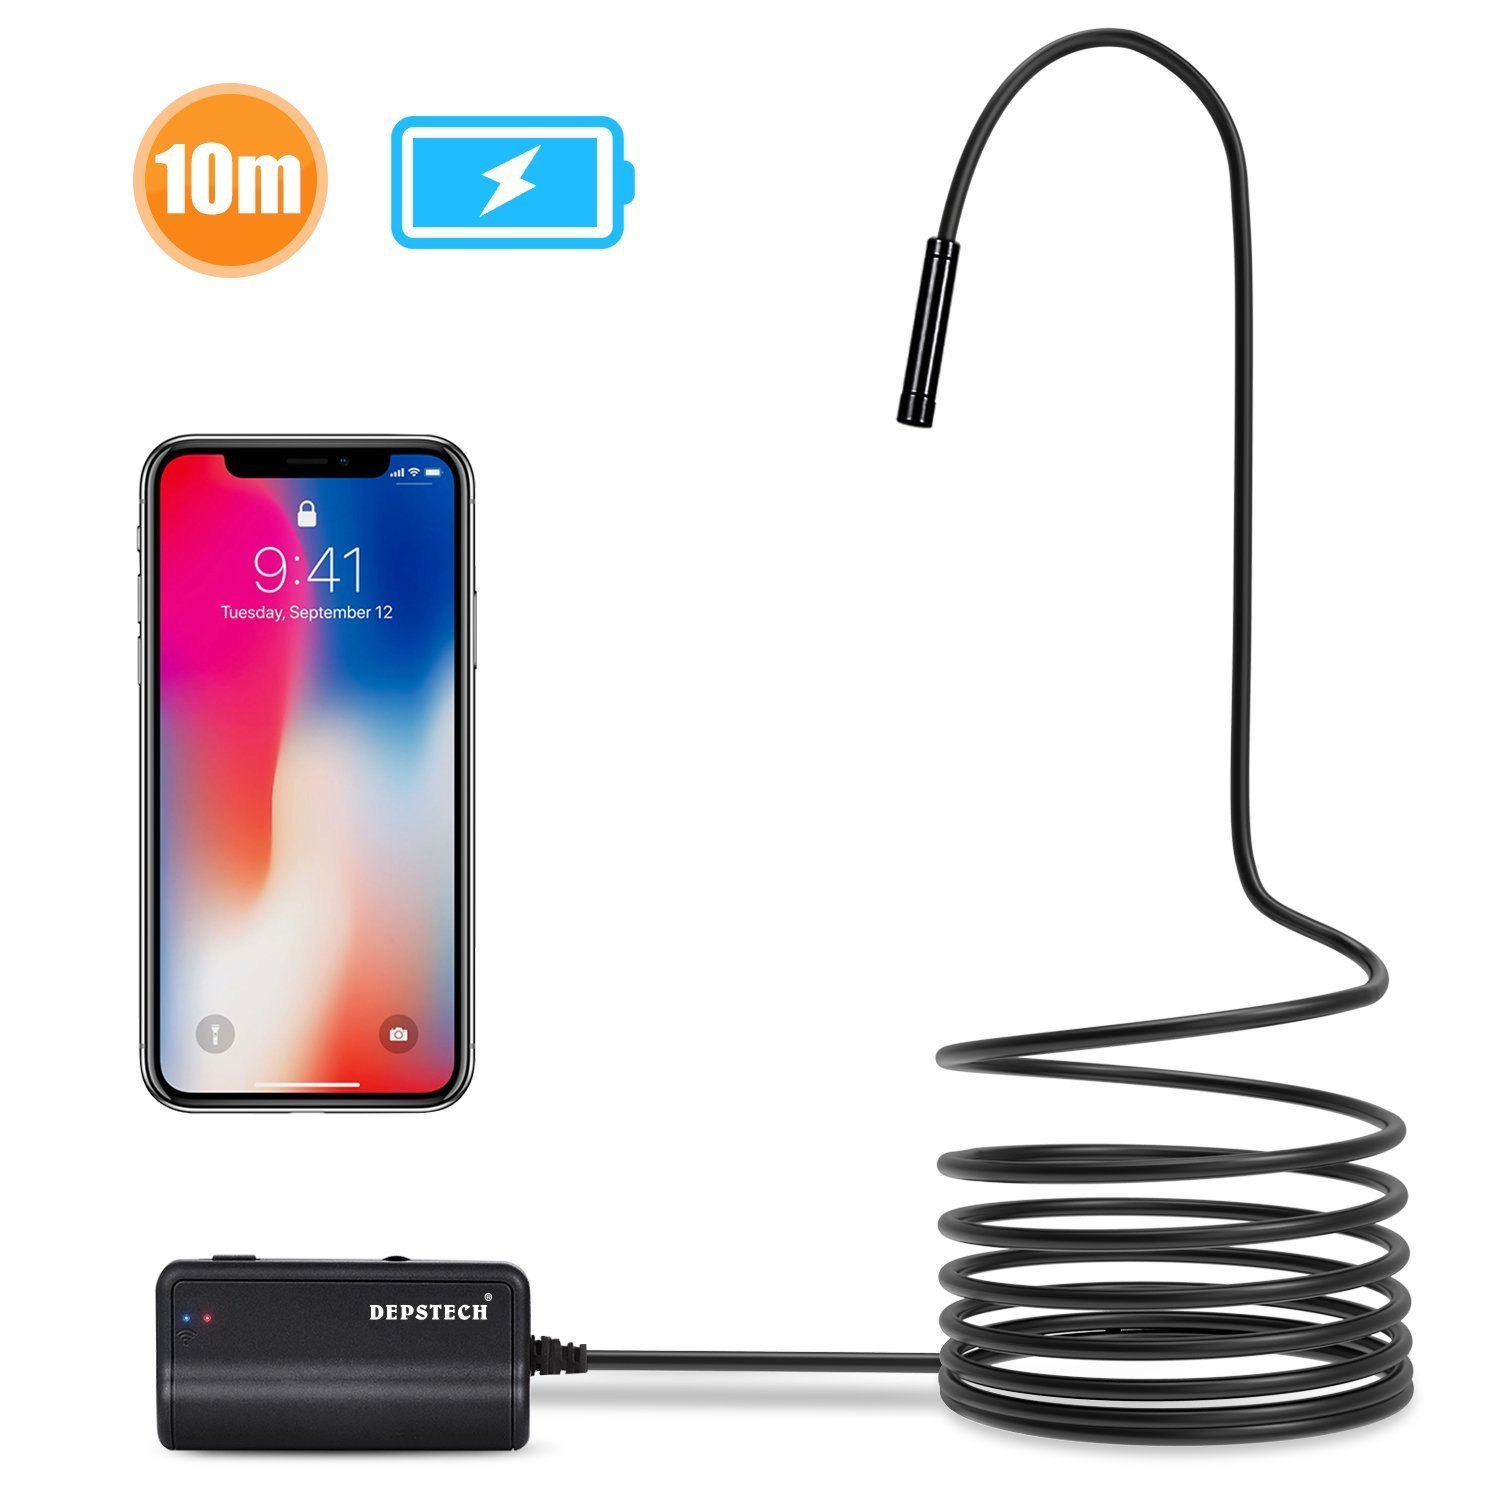 Depstech 1200P Semi-rigid Wireless Endoscope, 2.0 MP HD WiFi Borescope Inspection Camera,16 inch Focal Distance & 1800mAh Battery Snake Camera for Android & IOS Smartphone Tablet - Black 33FT by Depstech